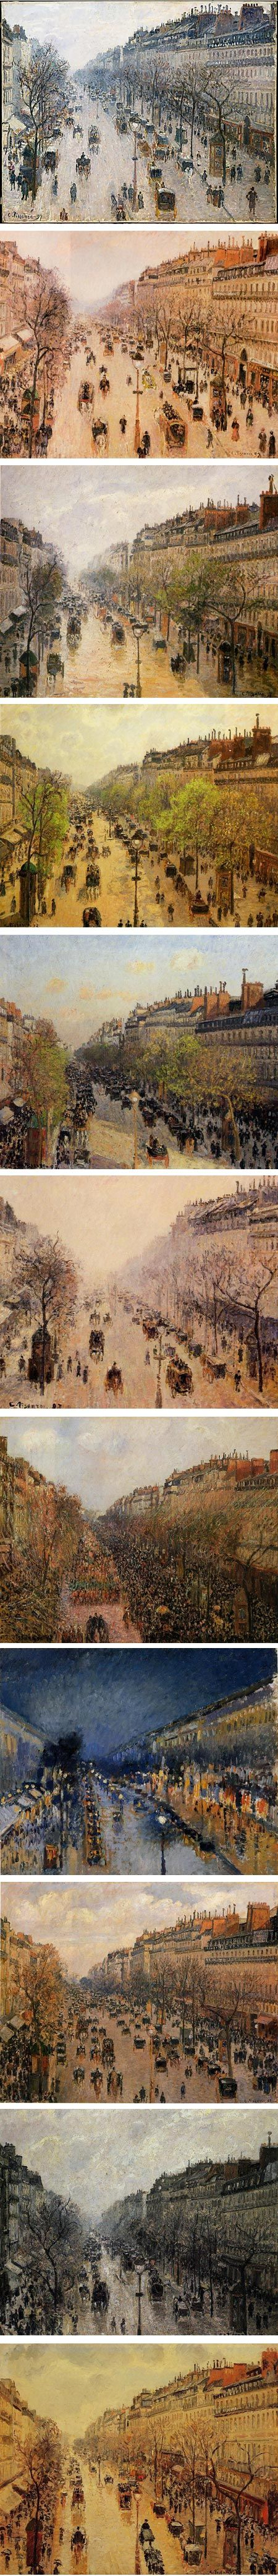 Pissarro's views of the boulevard Montmartre